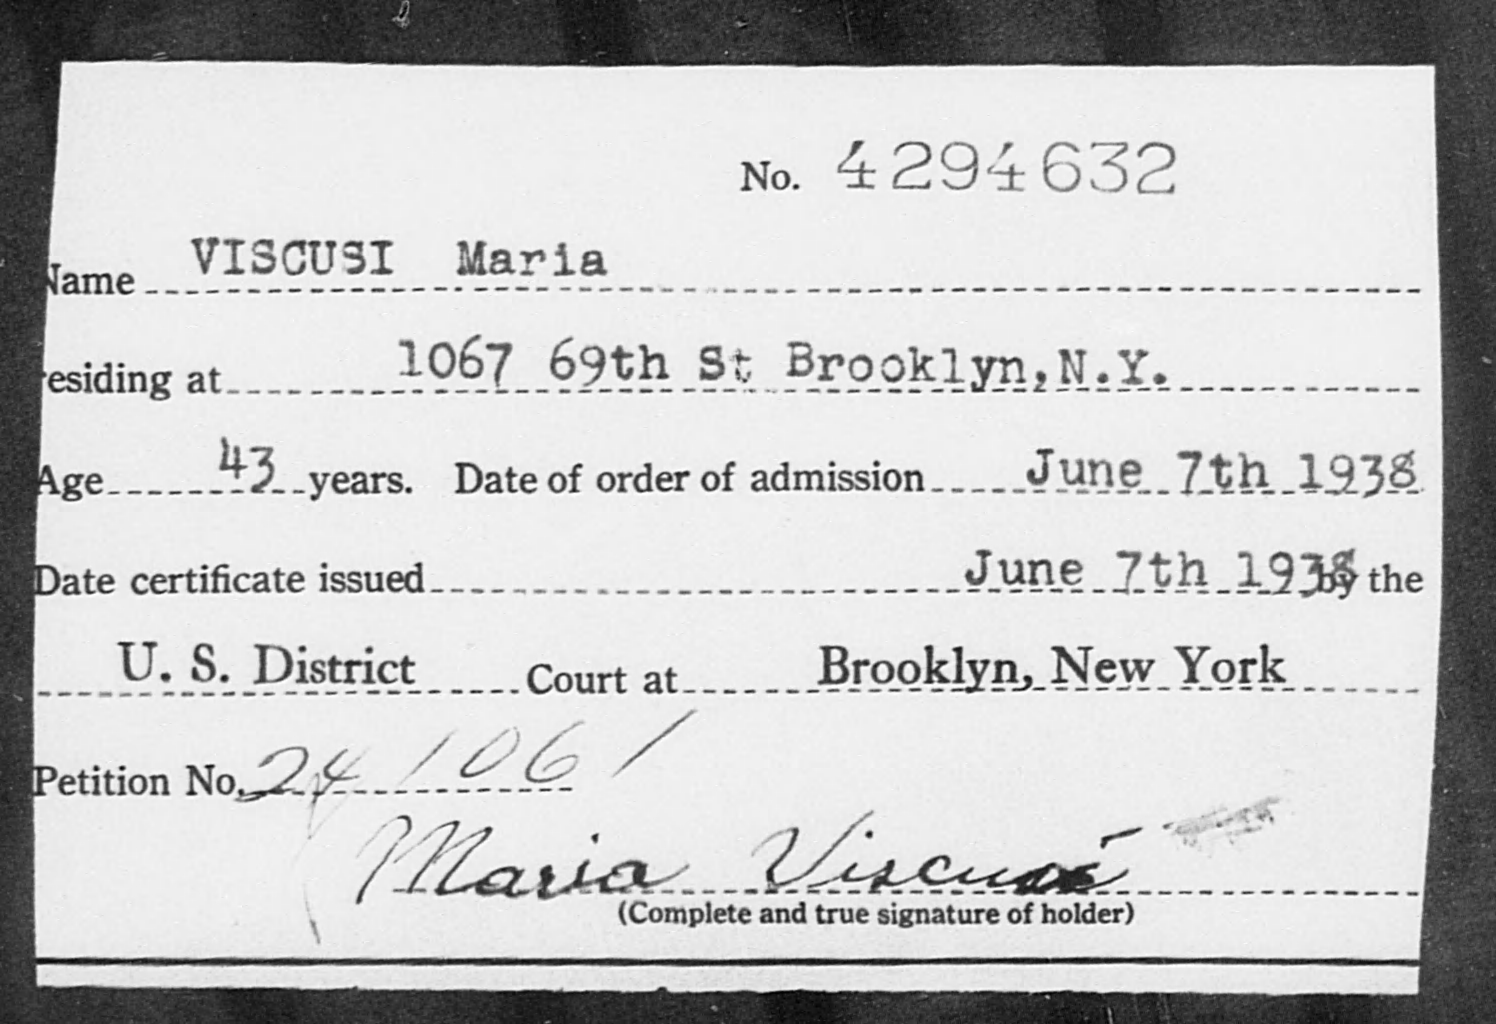 VISCUSI Maria - Born: [BLANK], Naturalized: 1938